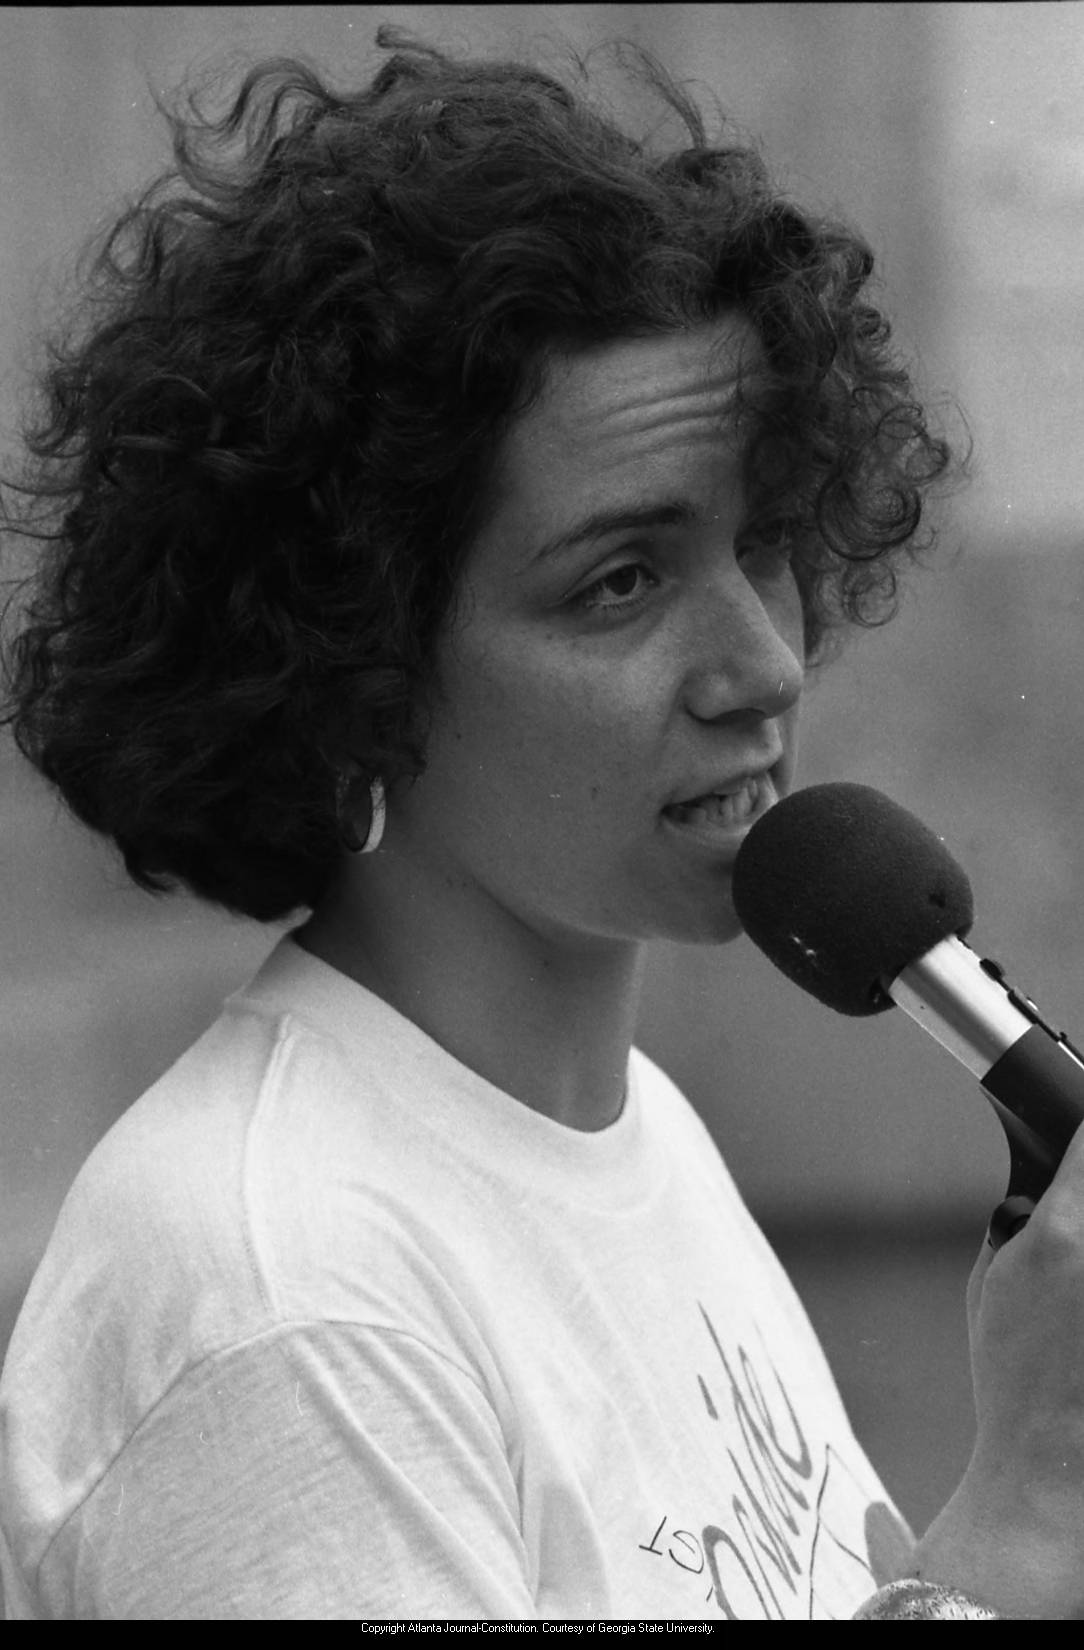 Woman at microphone, 1980 gay pride celebration, Atlanta, Georgia, June 21, 1980.